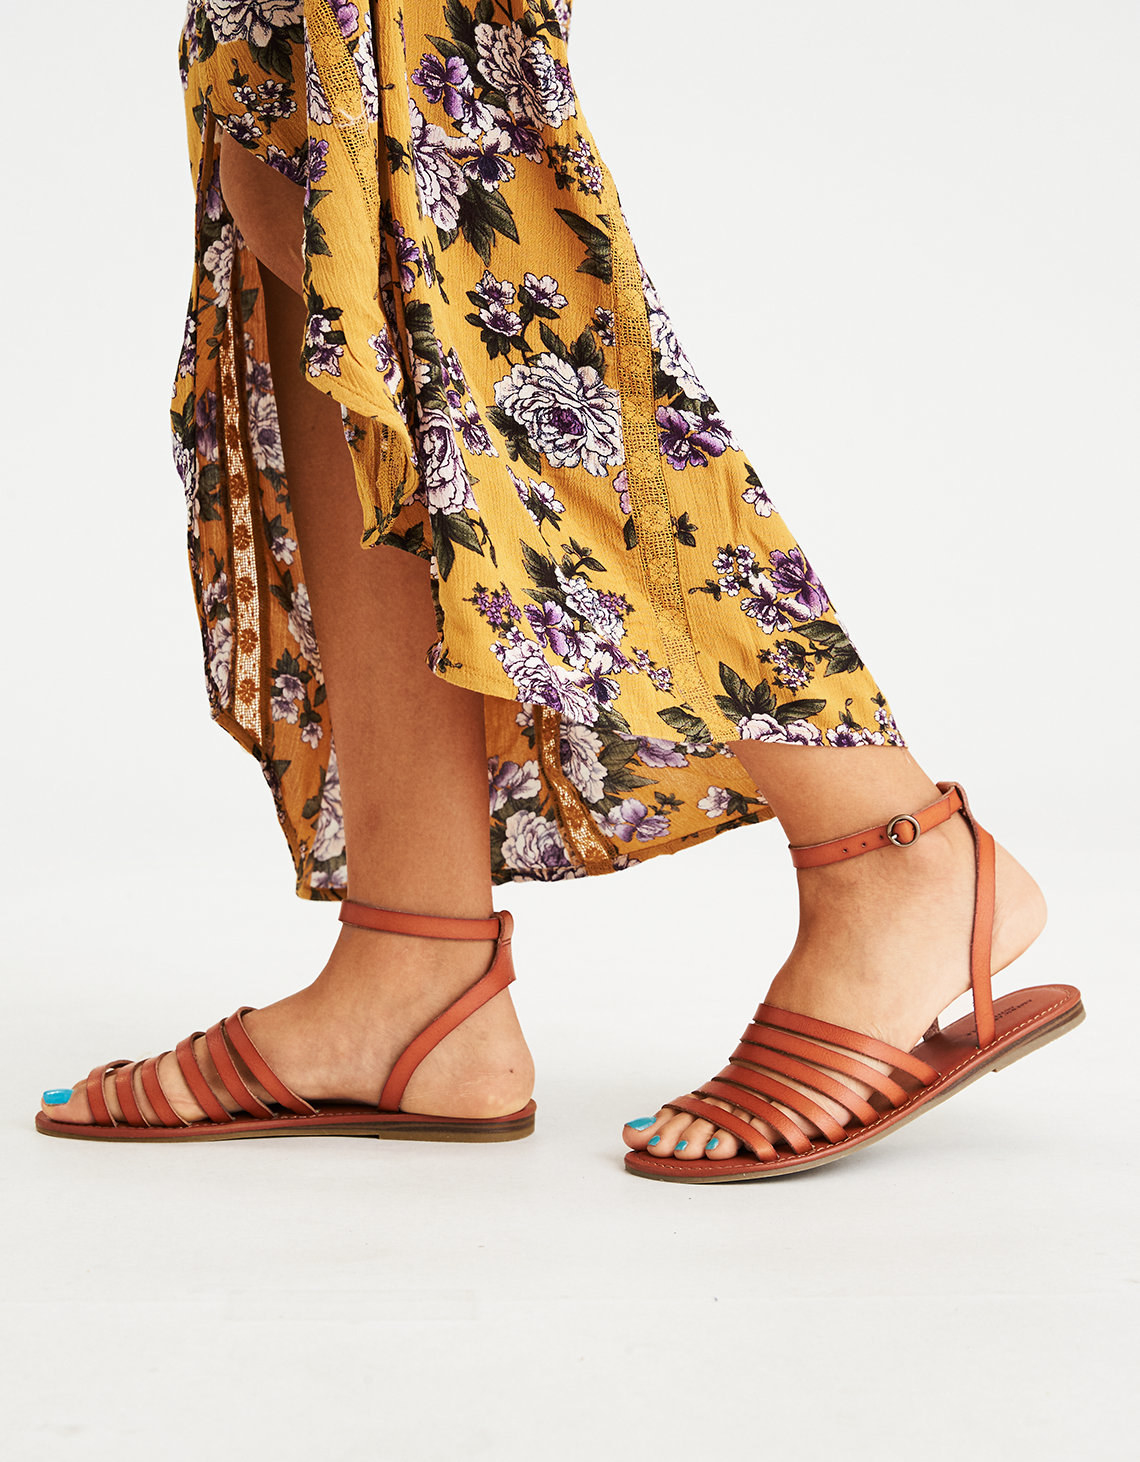 Sandals You Can Totally Wear To Work